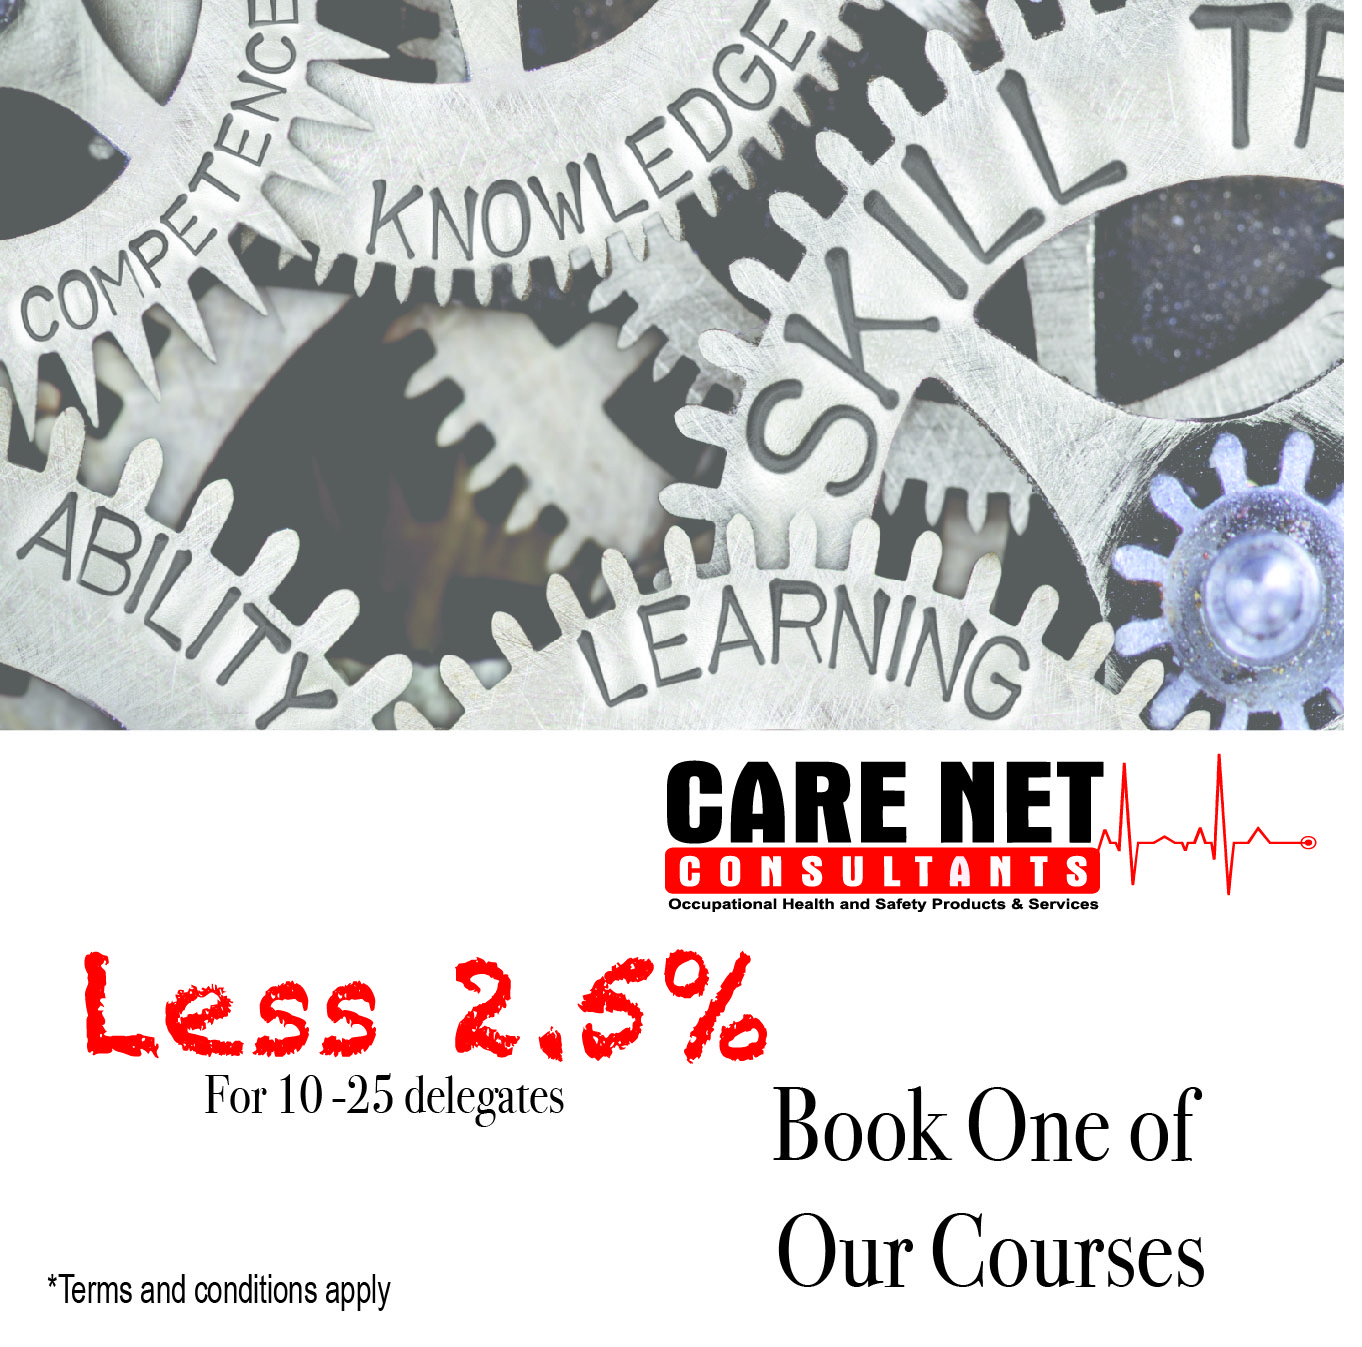 2,5% off on One Course